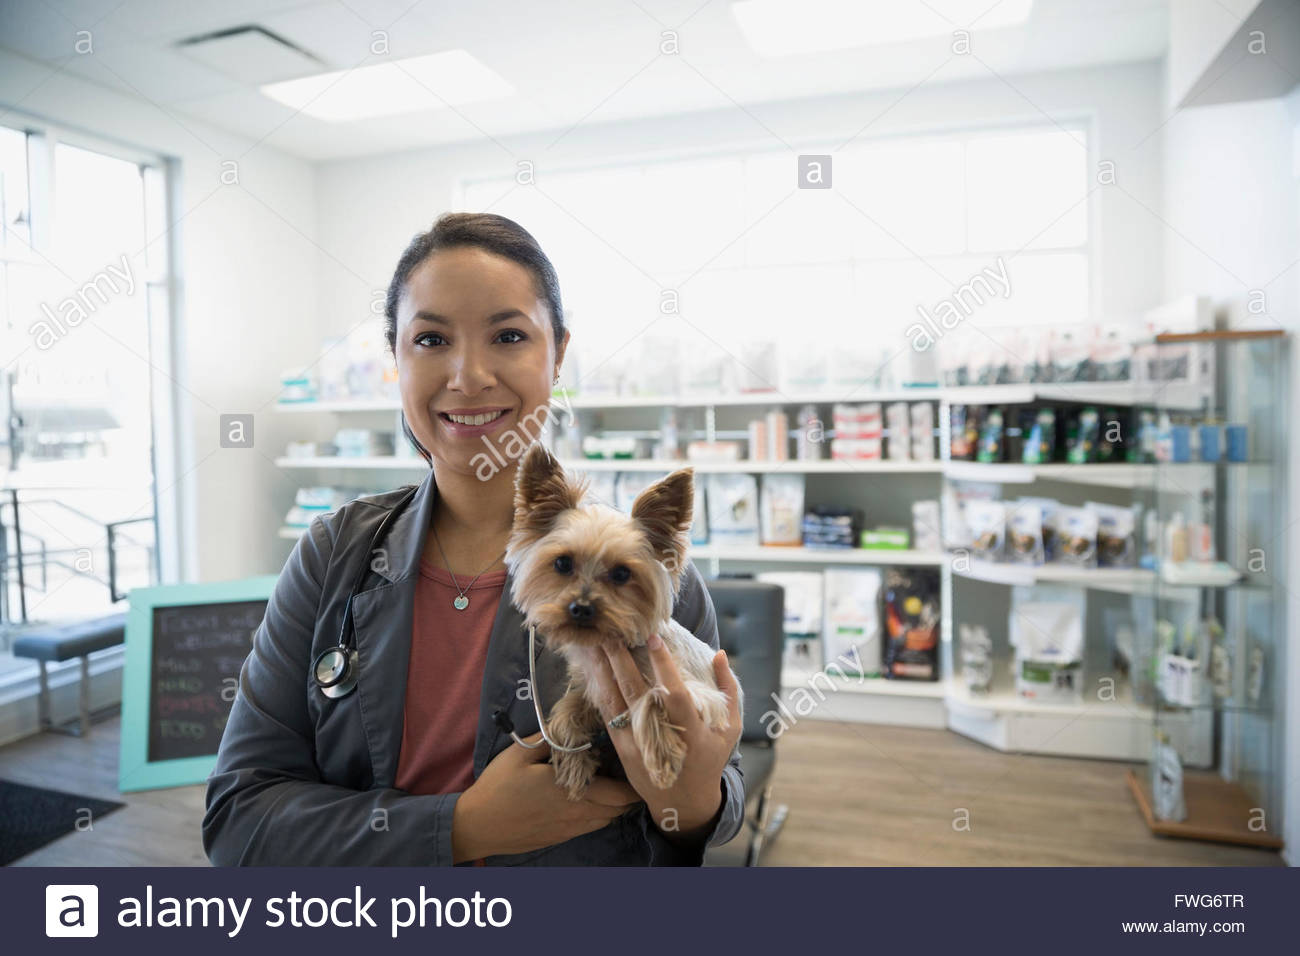 Portrait smiling veterinarian holding small dog in clinic - Stock Image